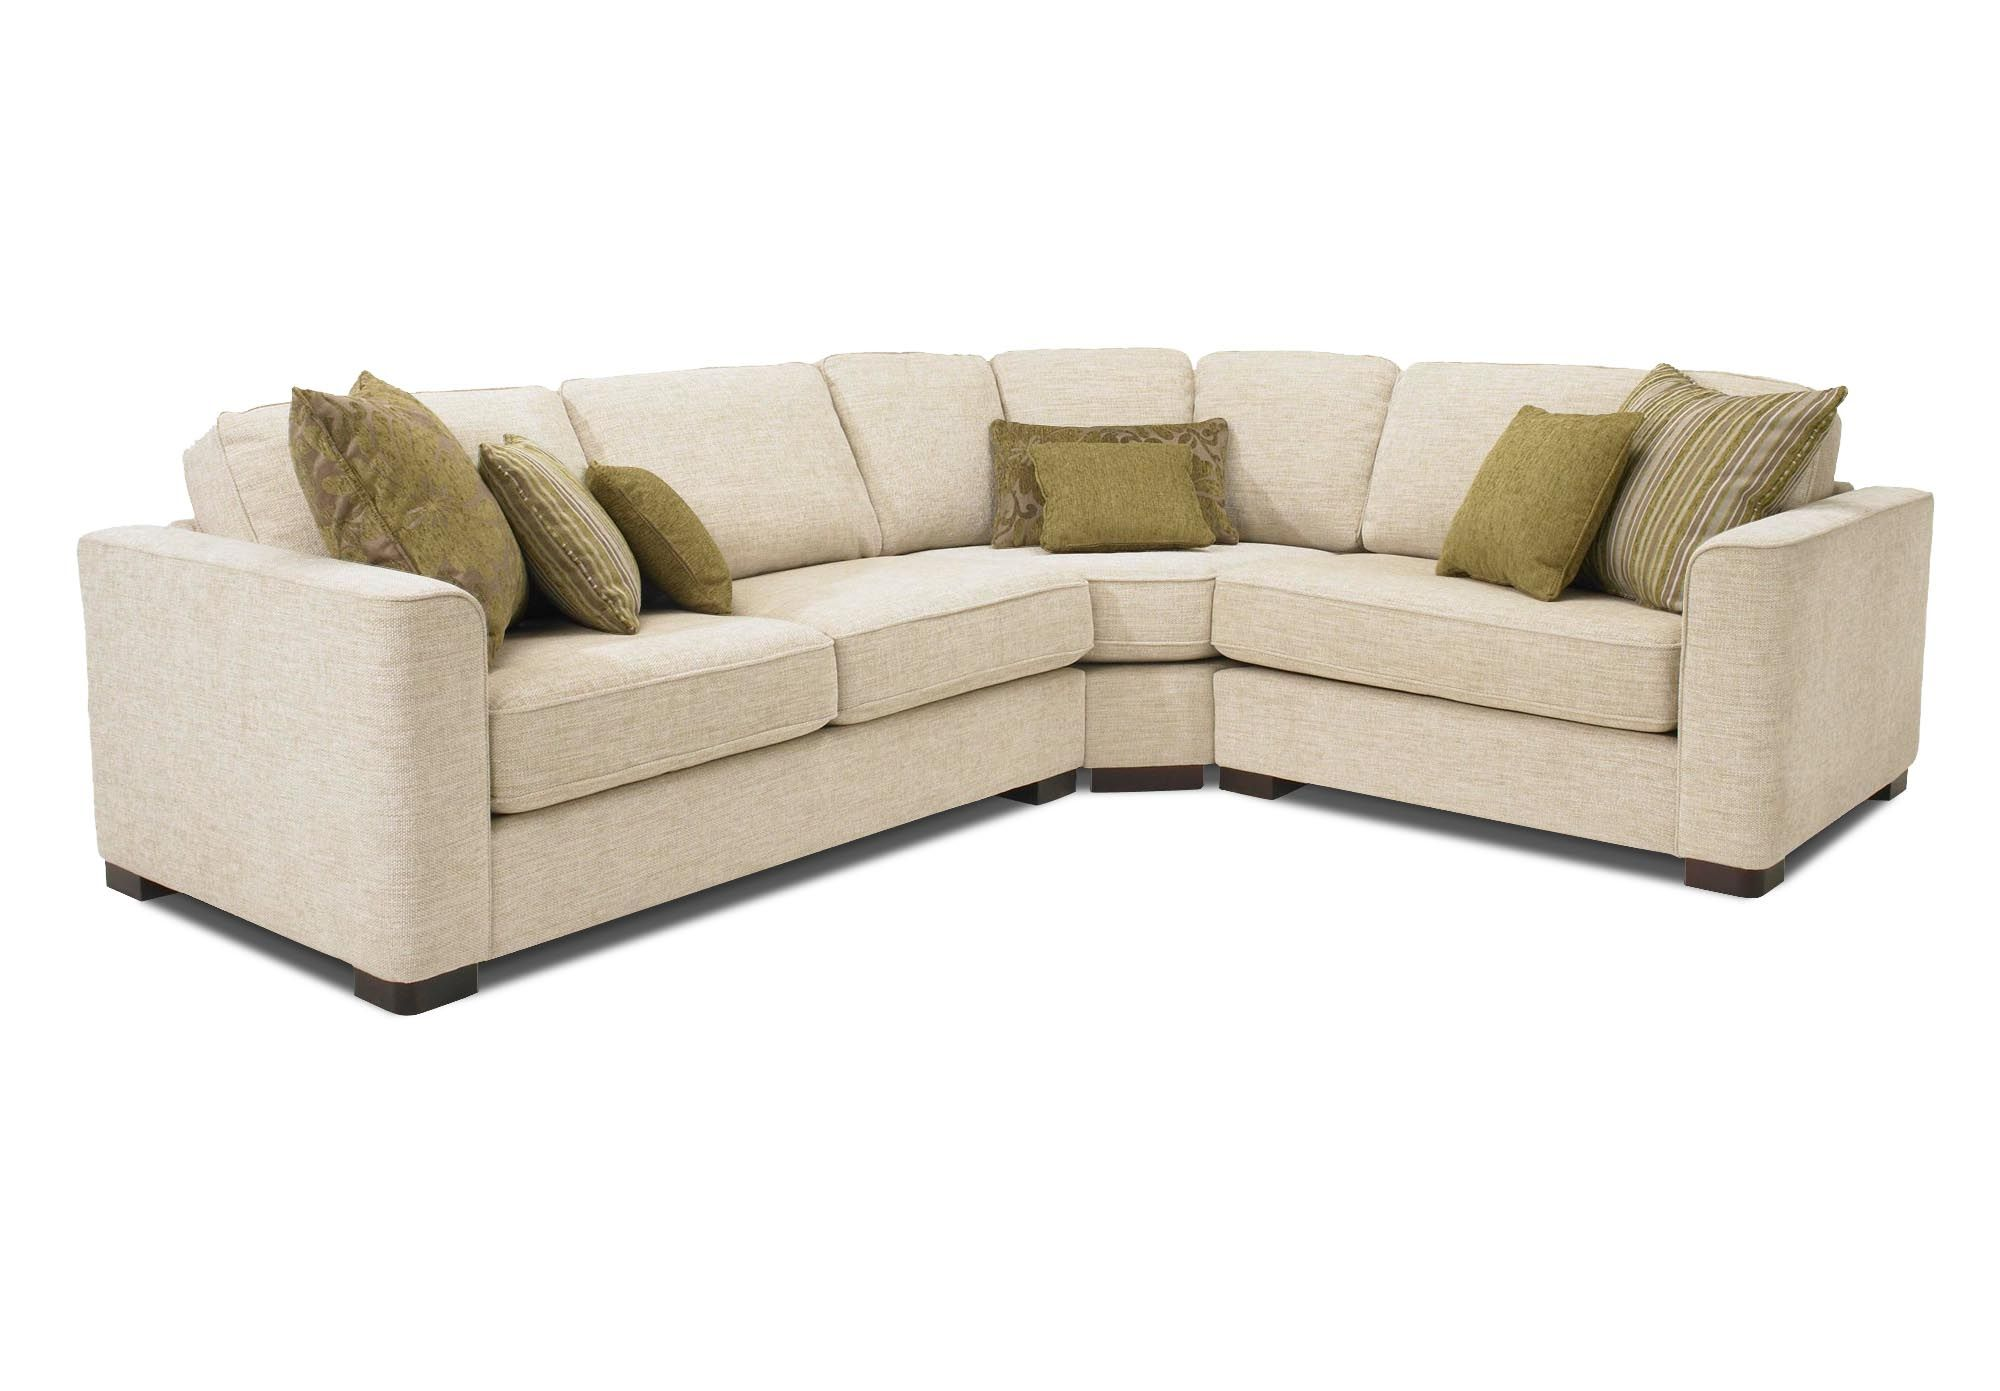 furniture village leather corner sofa bed how to remove mold from combi 2 rhf eleanor sets sofas